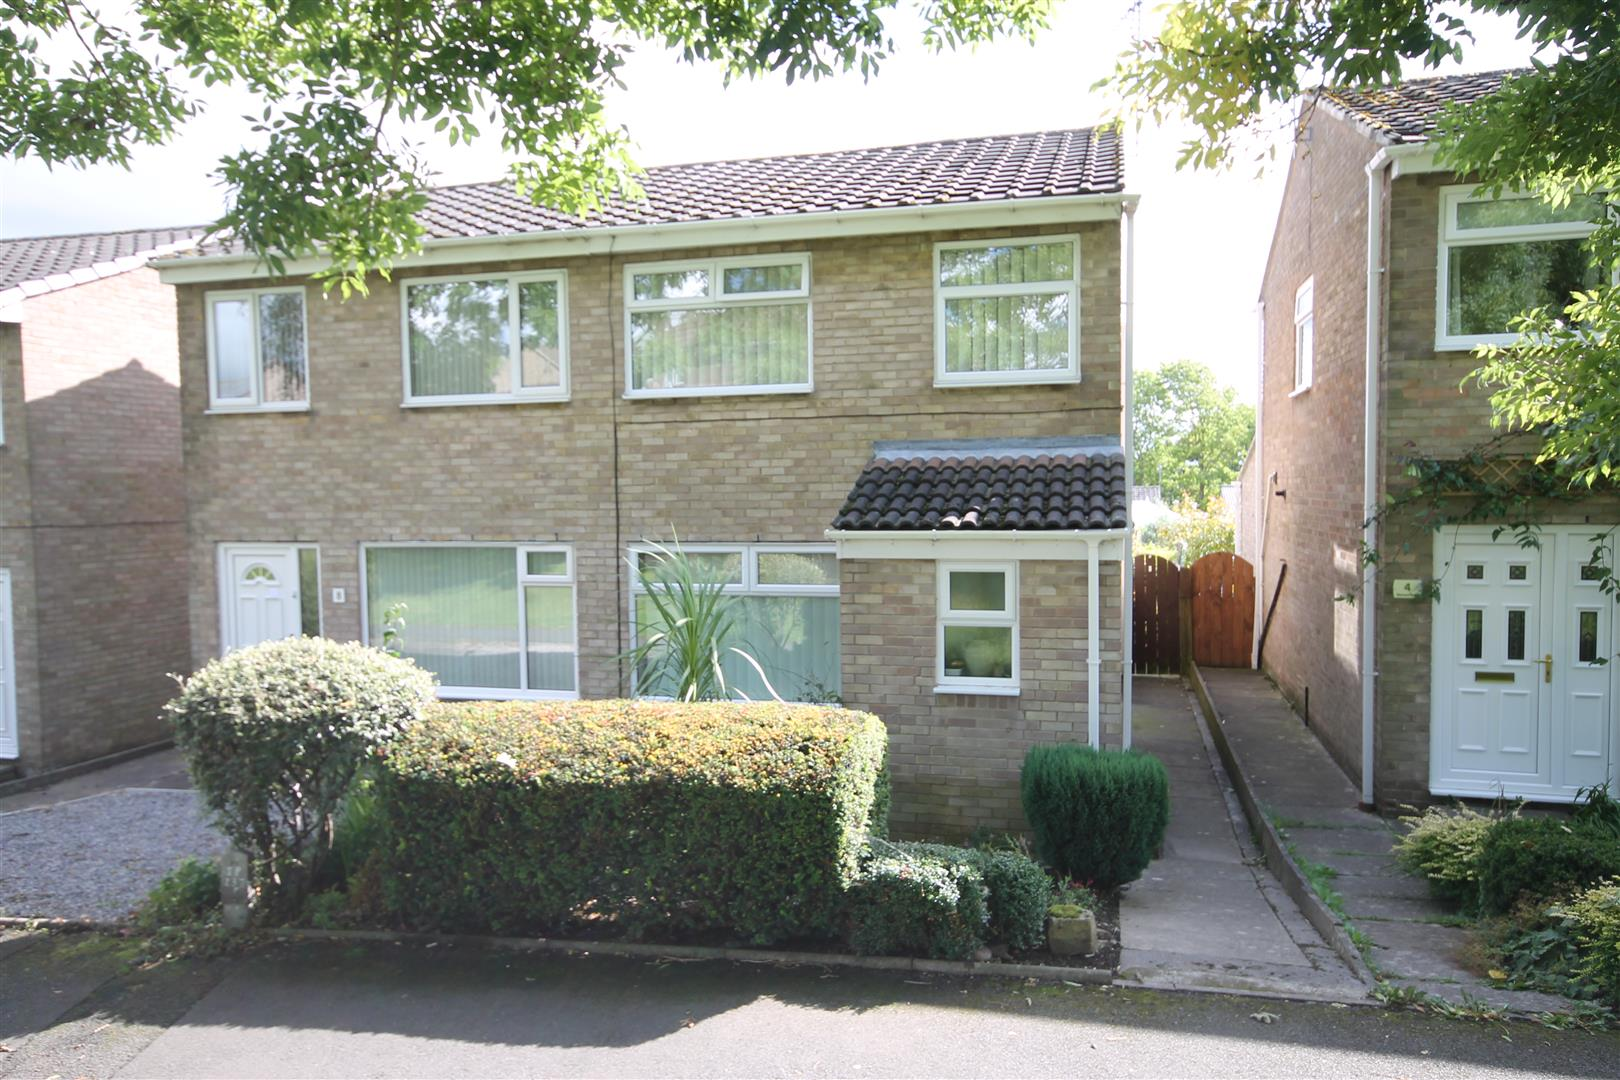 2 Bedrooms Semi Detached House for sale in Roman Road, Brandon, Durham